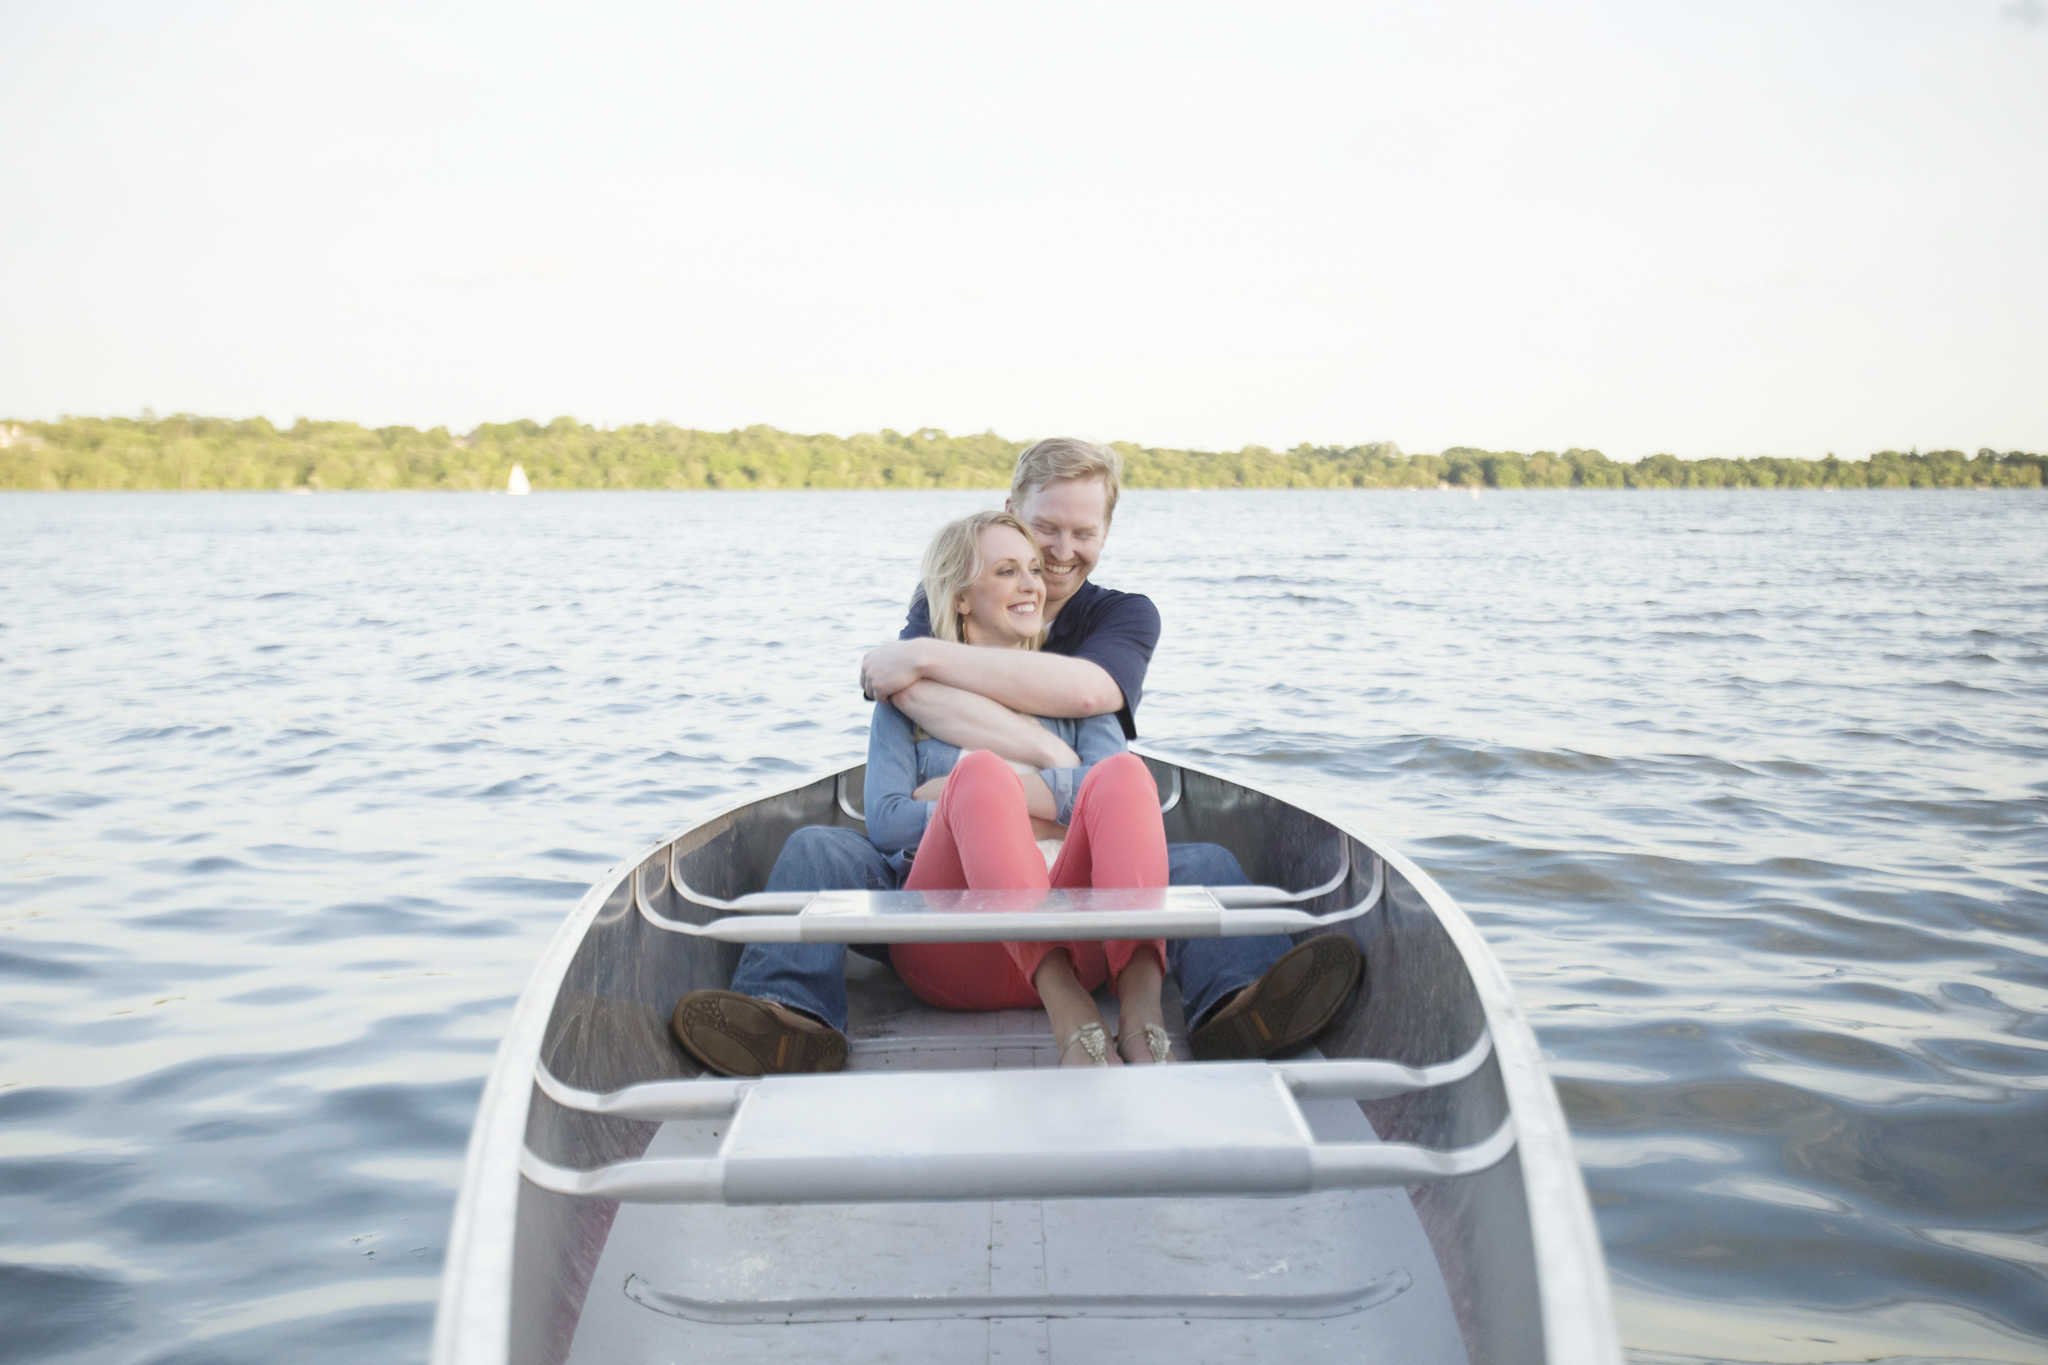 lake harriet minneapolis canoe engagement session-9.jpg